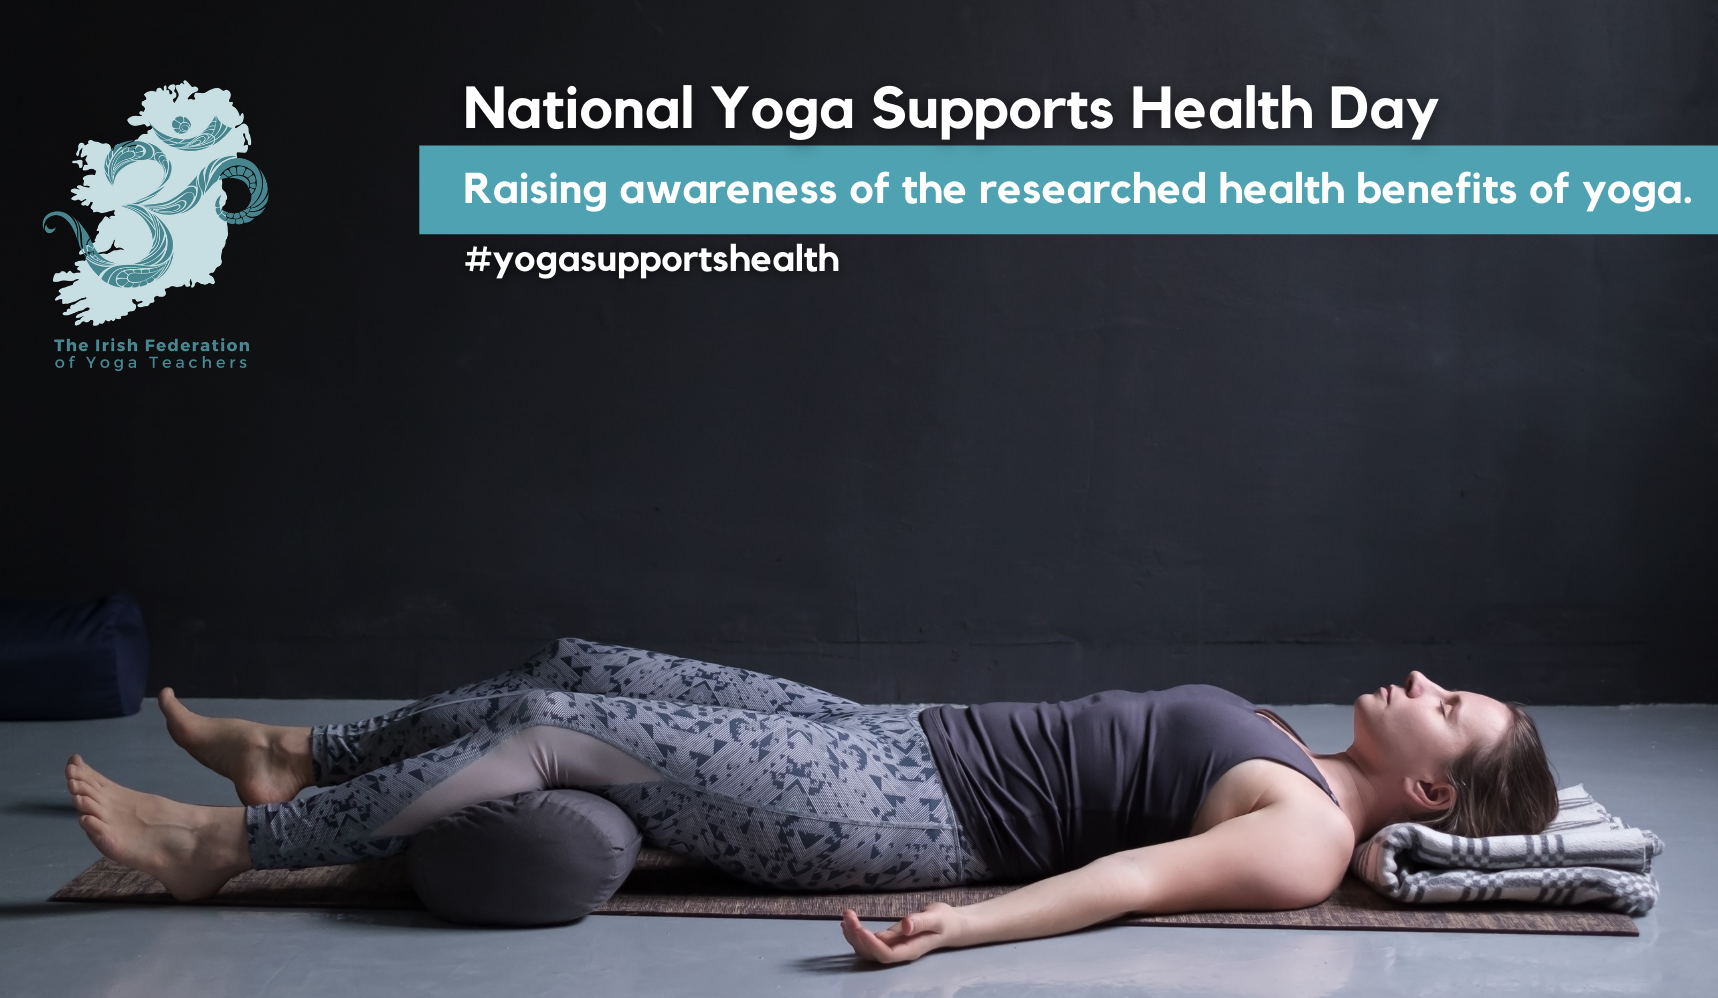 lady lying in relaxation legs over a bolster for yoga supports health event